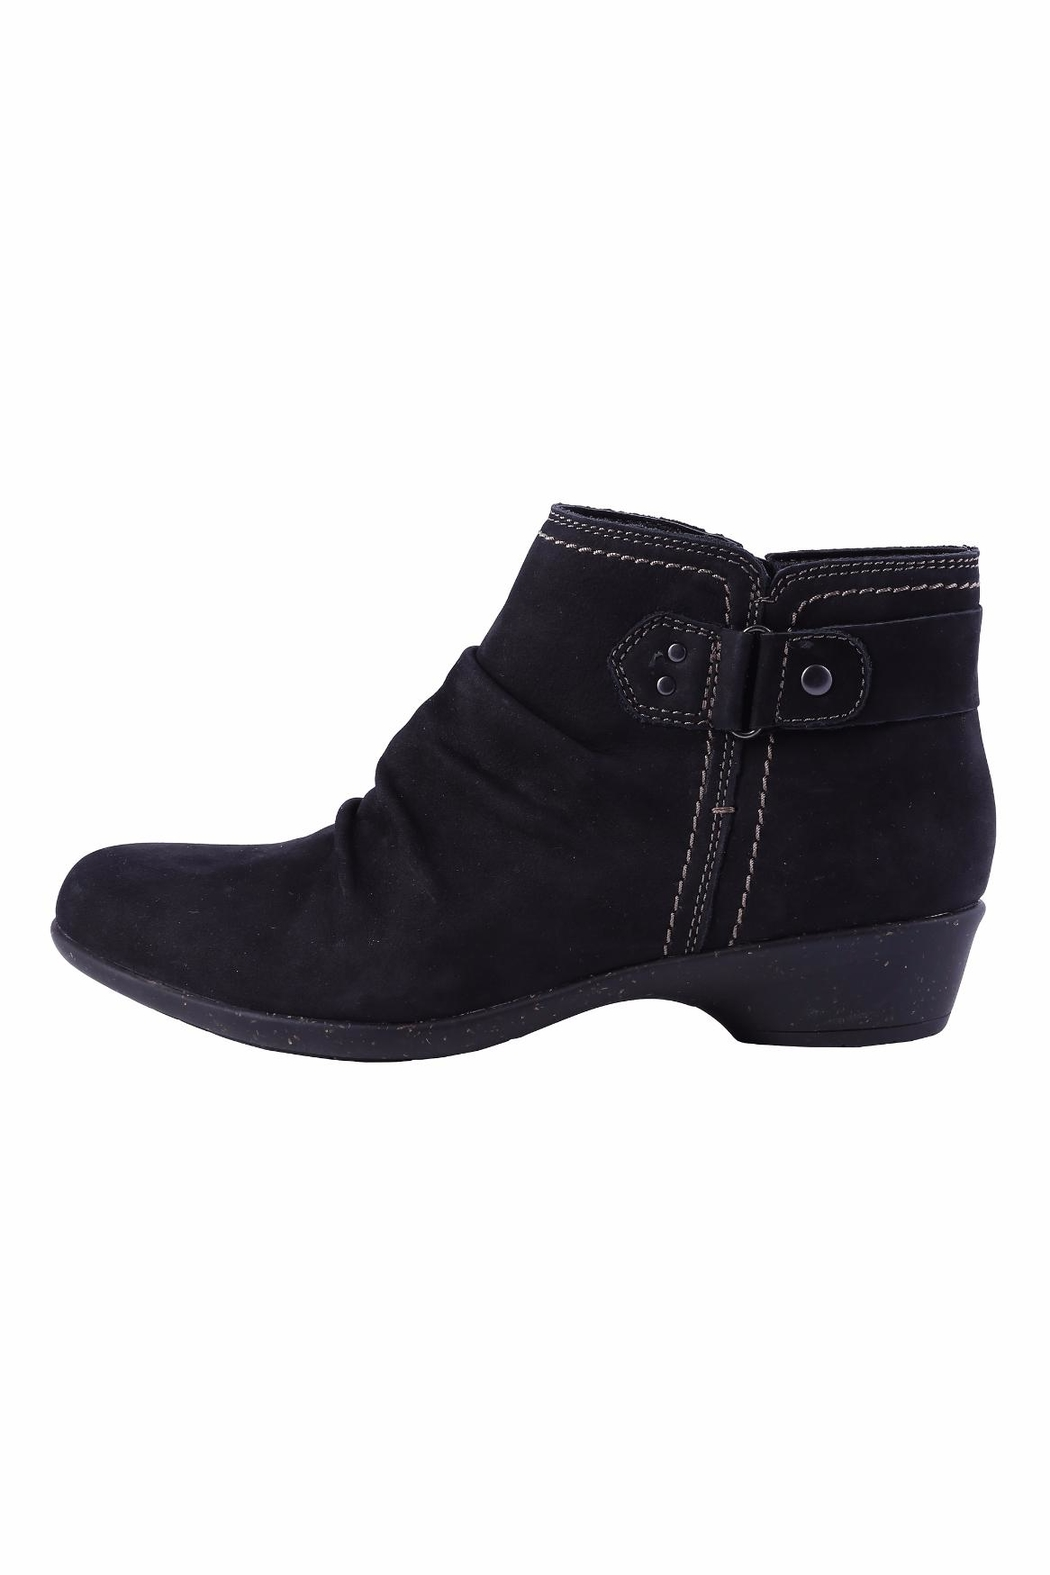 Cobb Hill Nicole Ankle Booties - Main Image